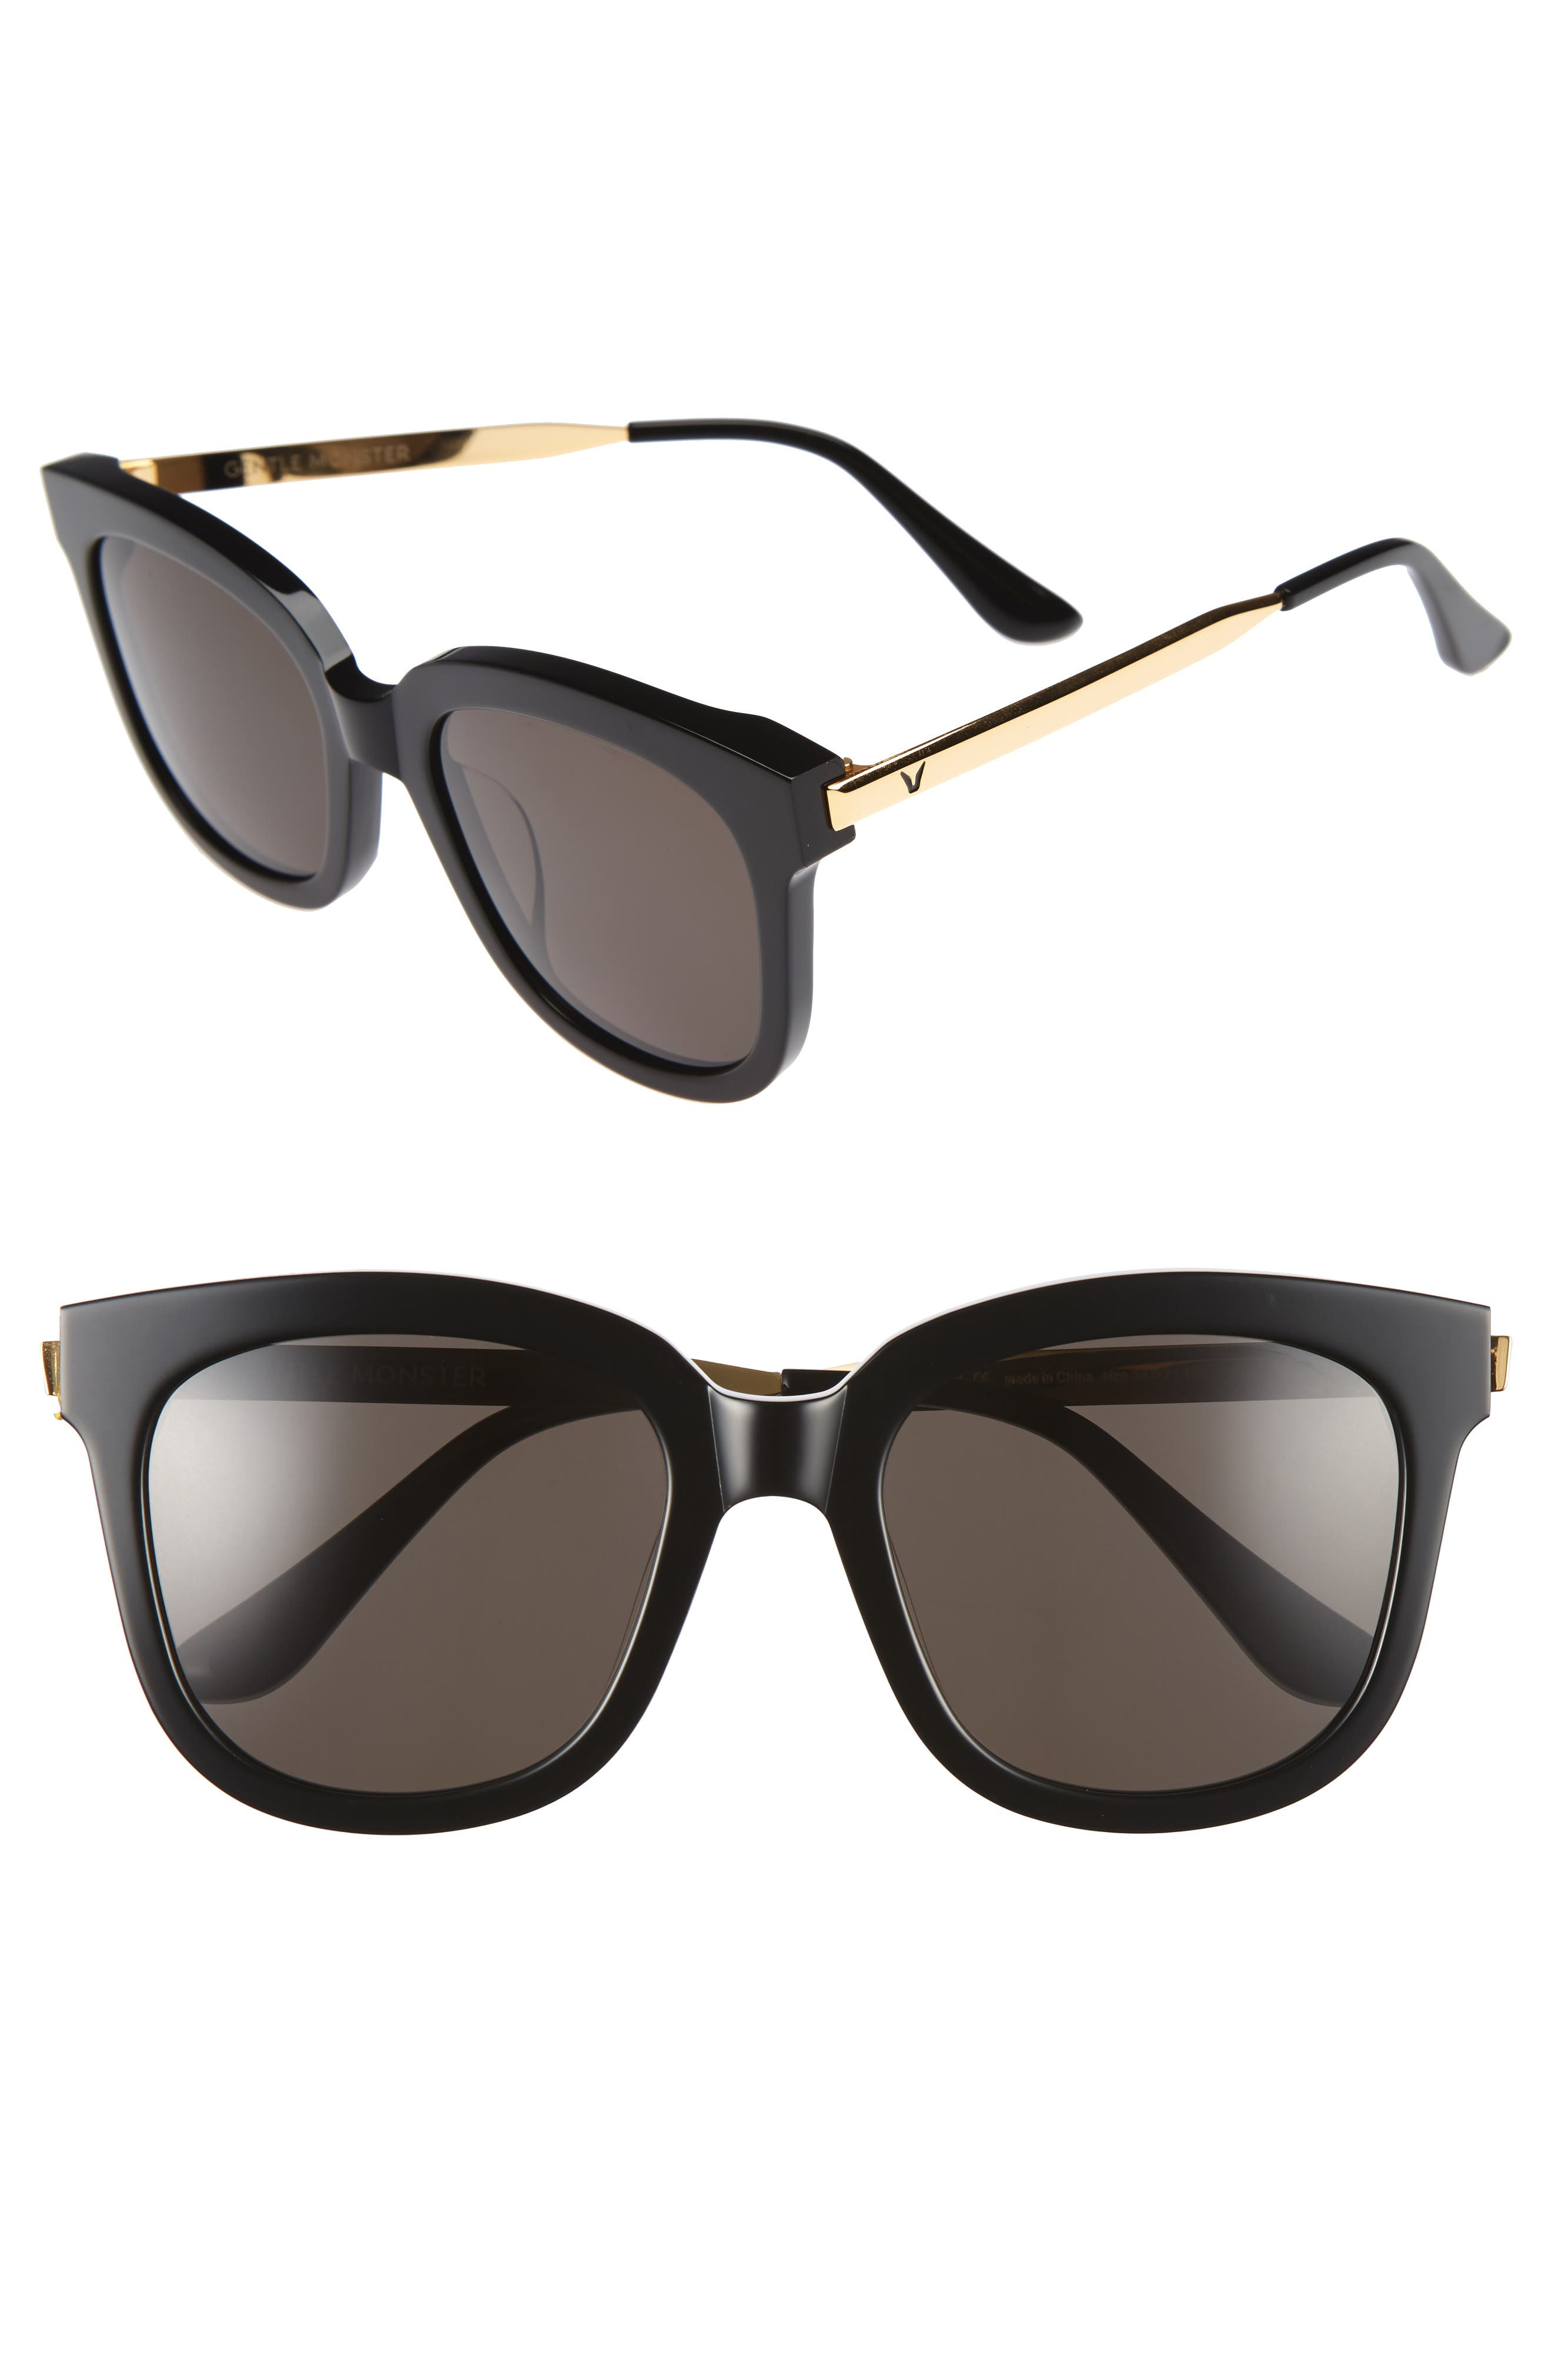 Absente 54mm Sunglasses,                         Main,                         color, 001